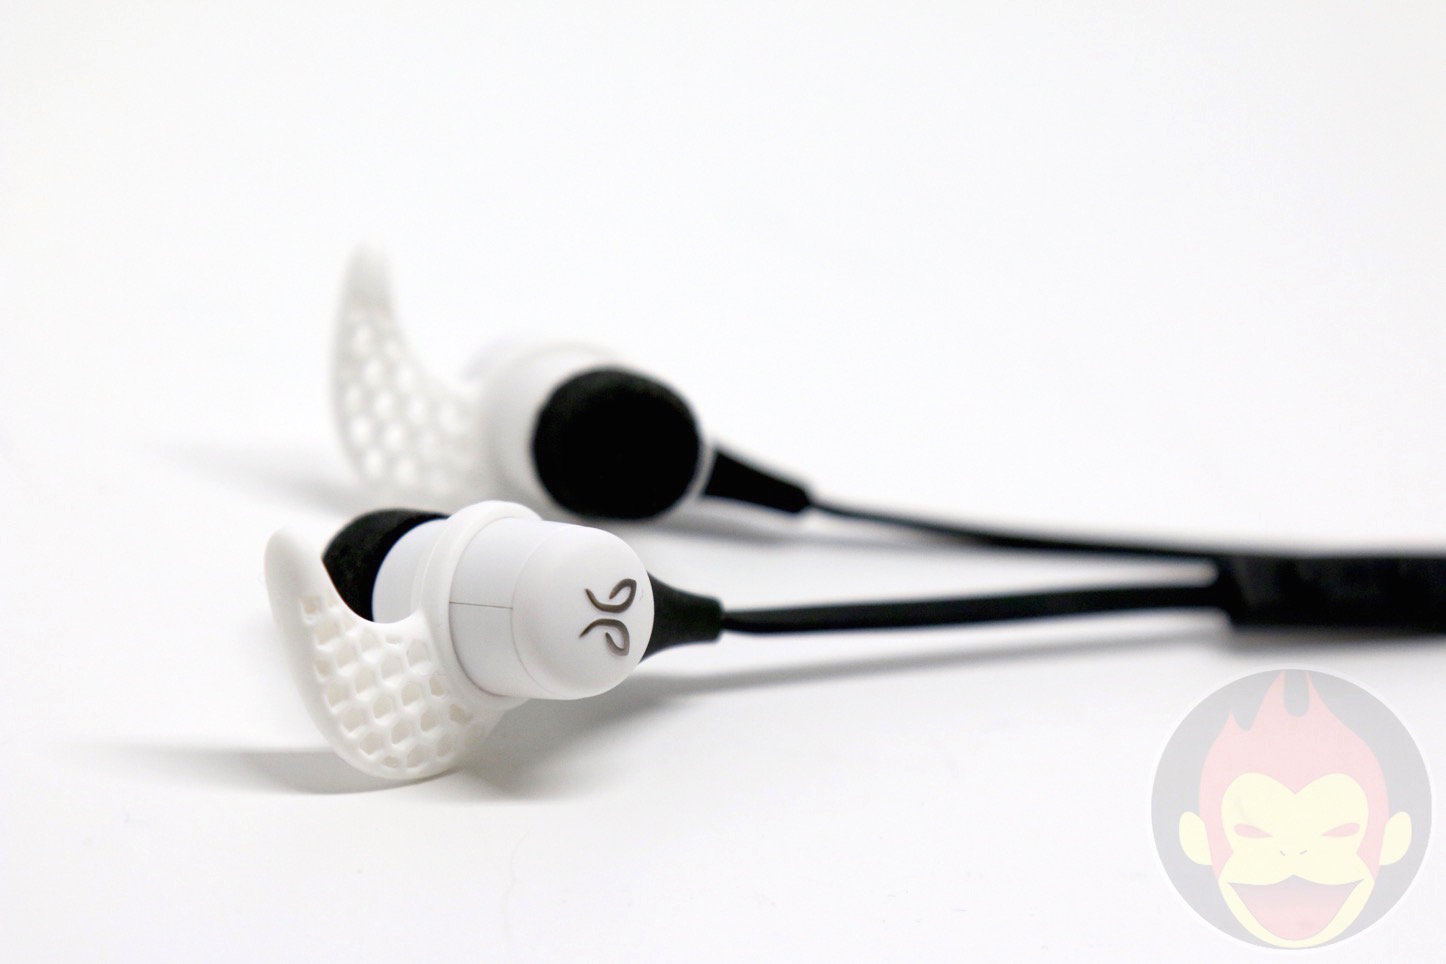 Jaybird-X2-Wireless-Earphones-17.jpg